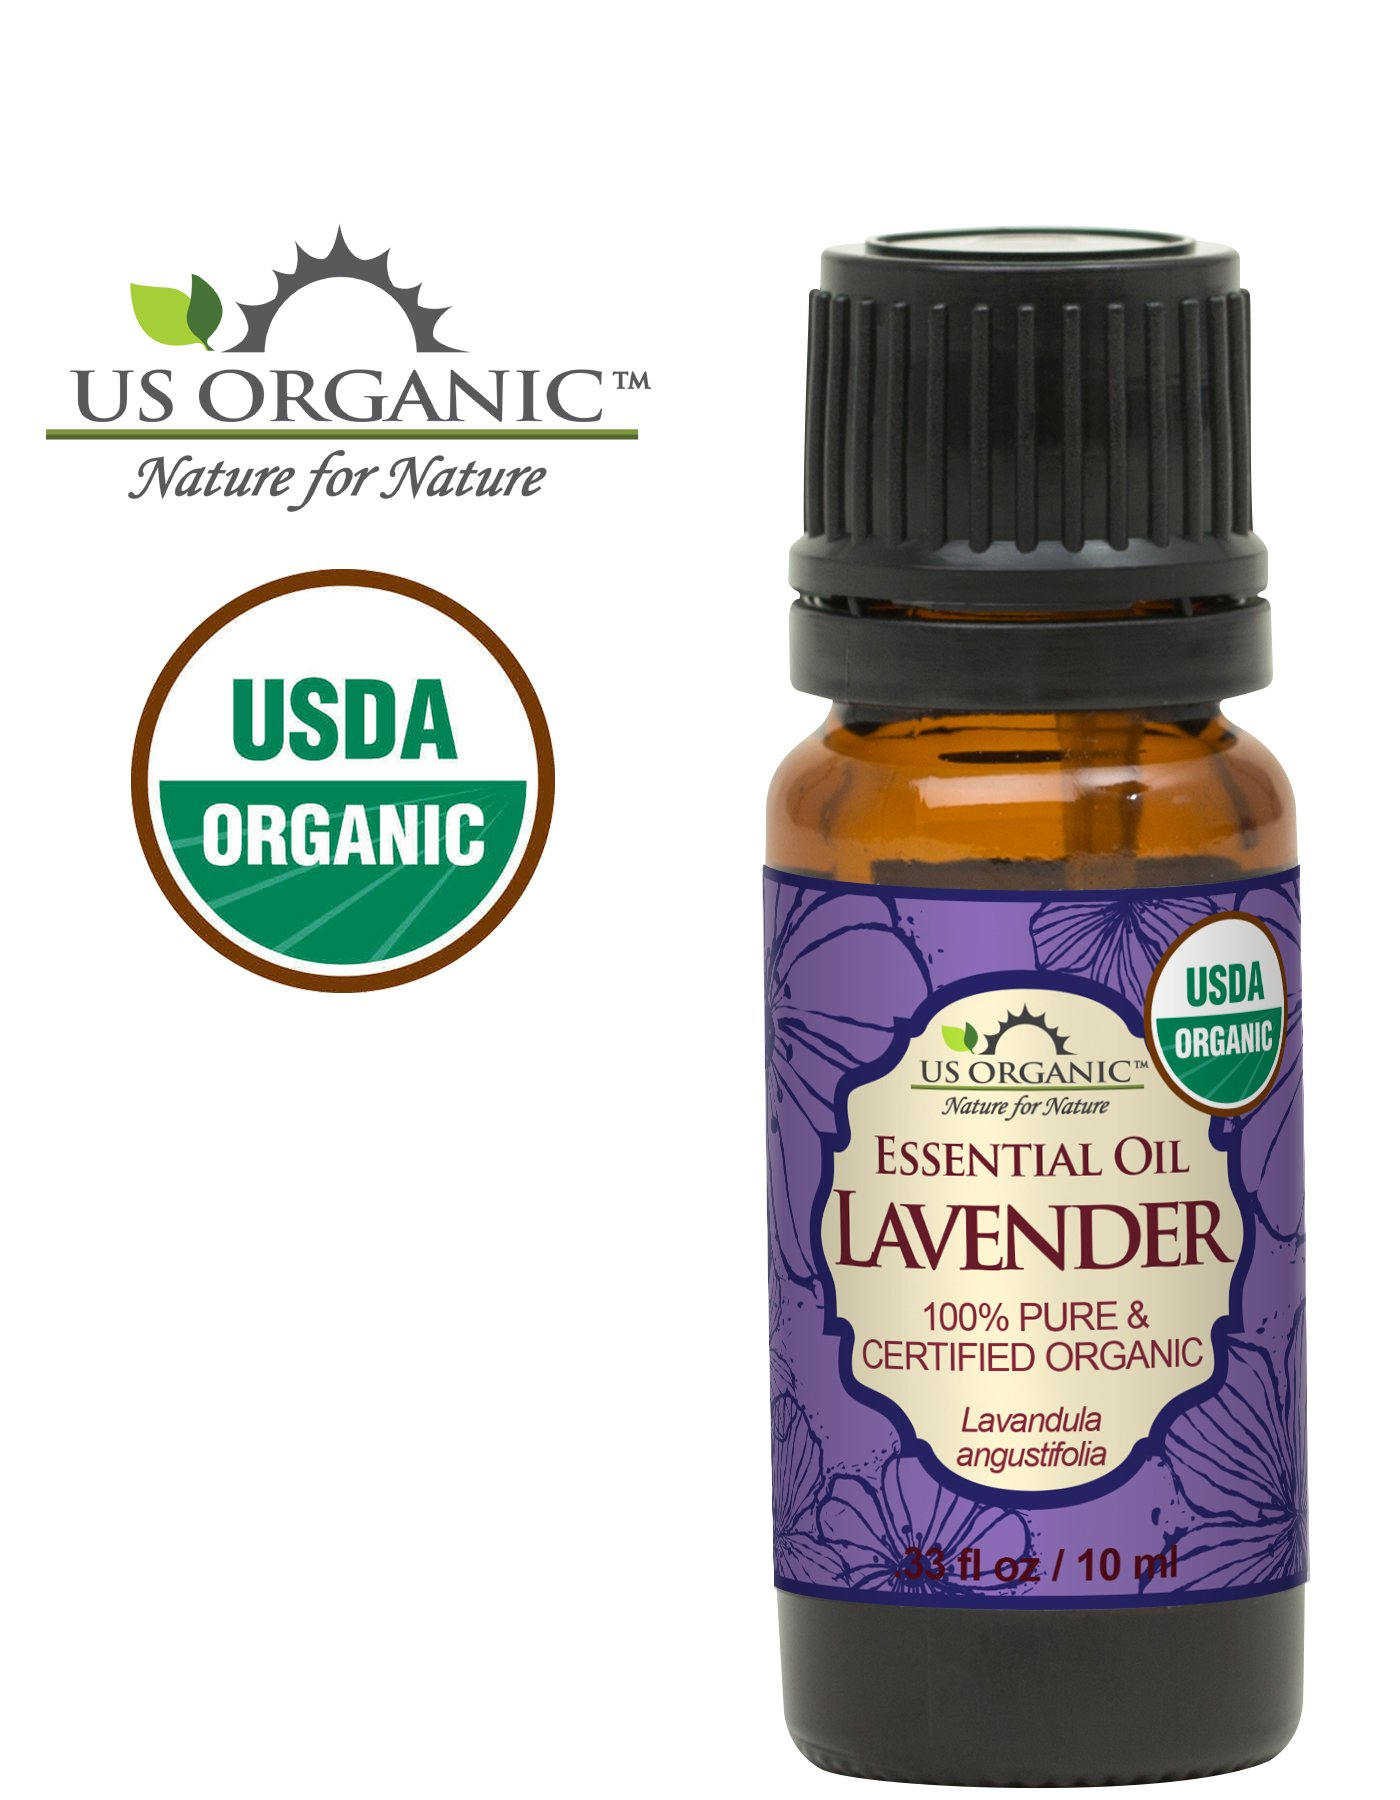 US Organic 100% Pure Lavender Essential Oil (Bulgarian) - USDA Certified Organic - 10 ml - w/ Improved caps and droppers (More Size Variations Available)